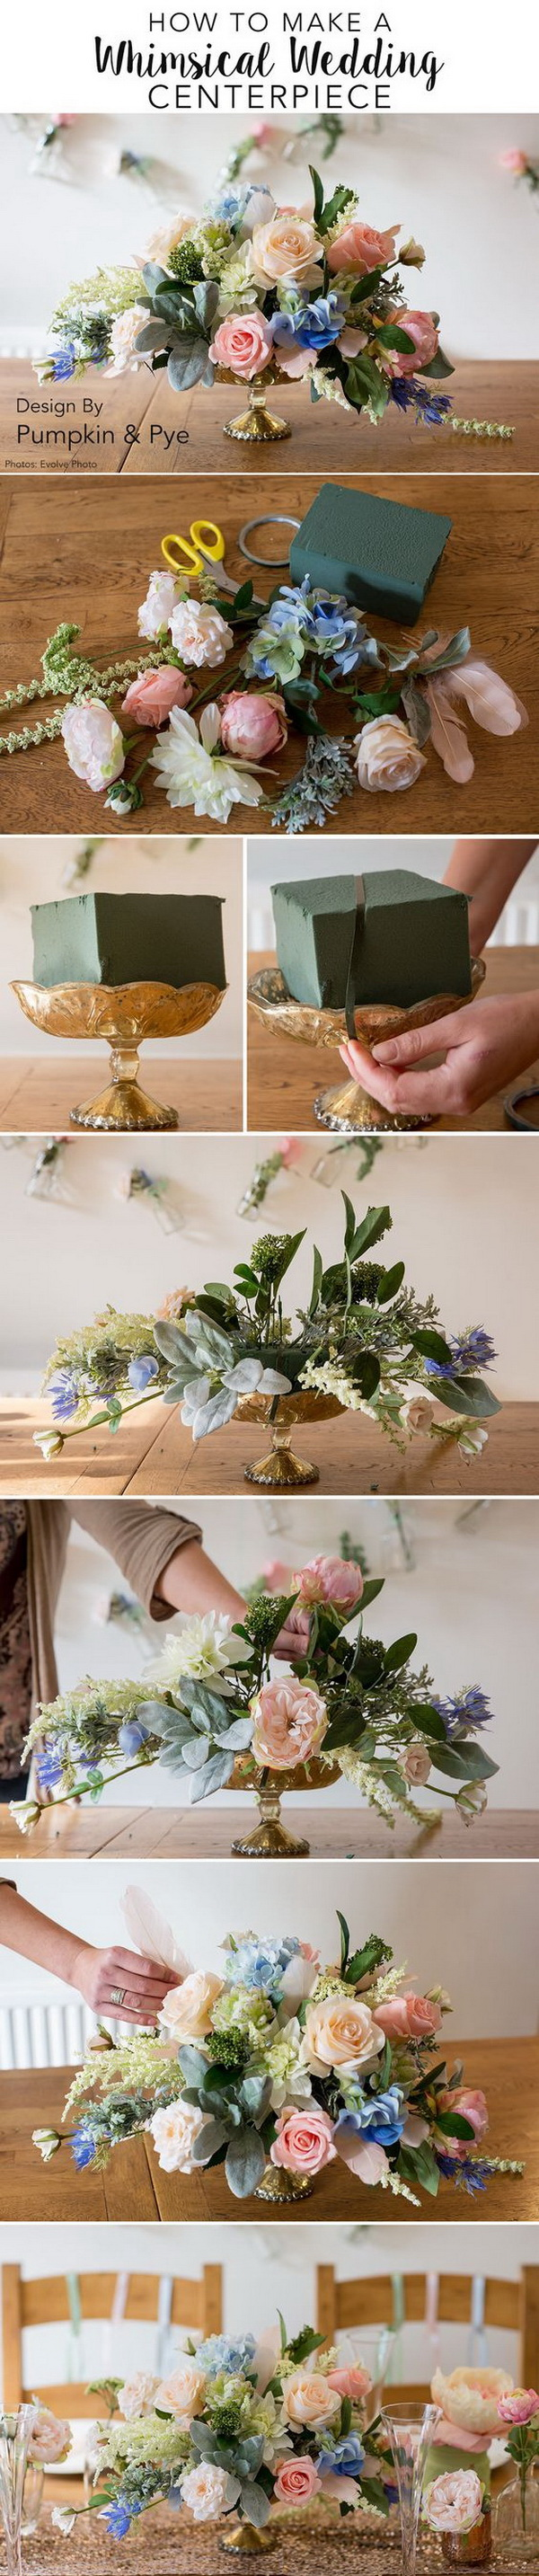 DIY Flower Arrangement Centerpiece. This gorgeous DIY flower Centerpiece will make the perfect addition to your wedding, event or home table.